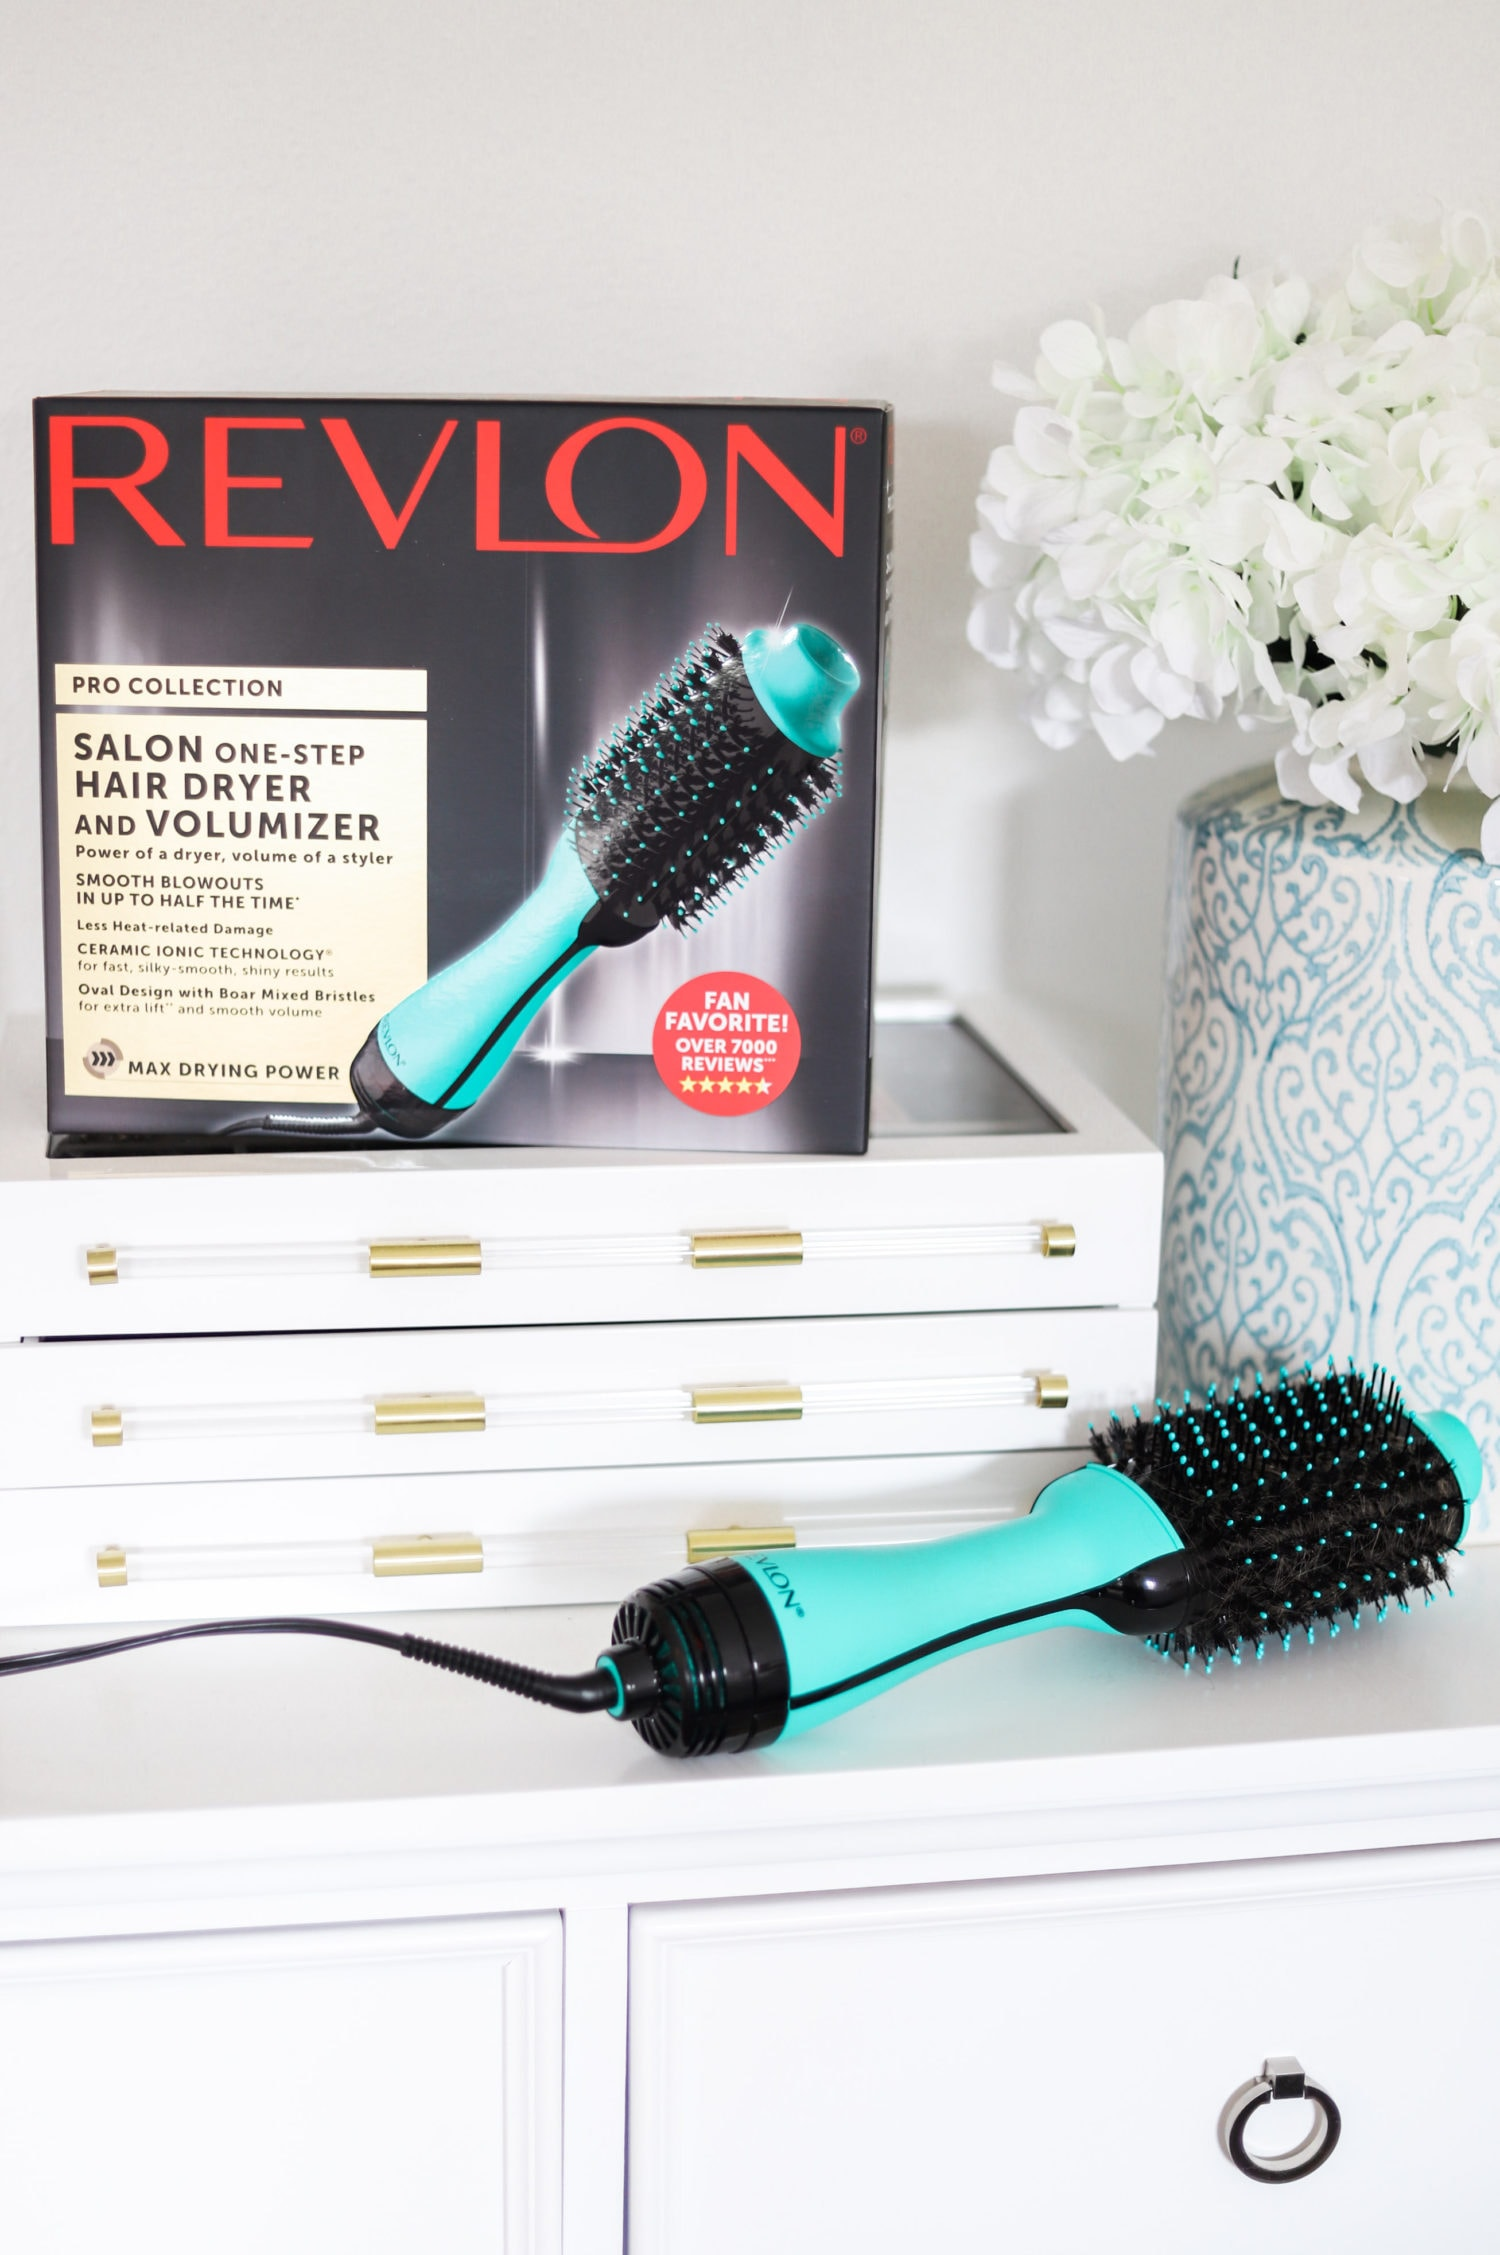 How to get a salon-quality blowout at home with the Revlon One-Step Volumizer and Hair Dryer in Orlando, Florida beauty blogger's easy step-by-step video tutorial. New teal color that's exclusive to Target